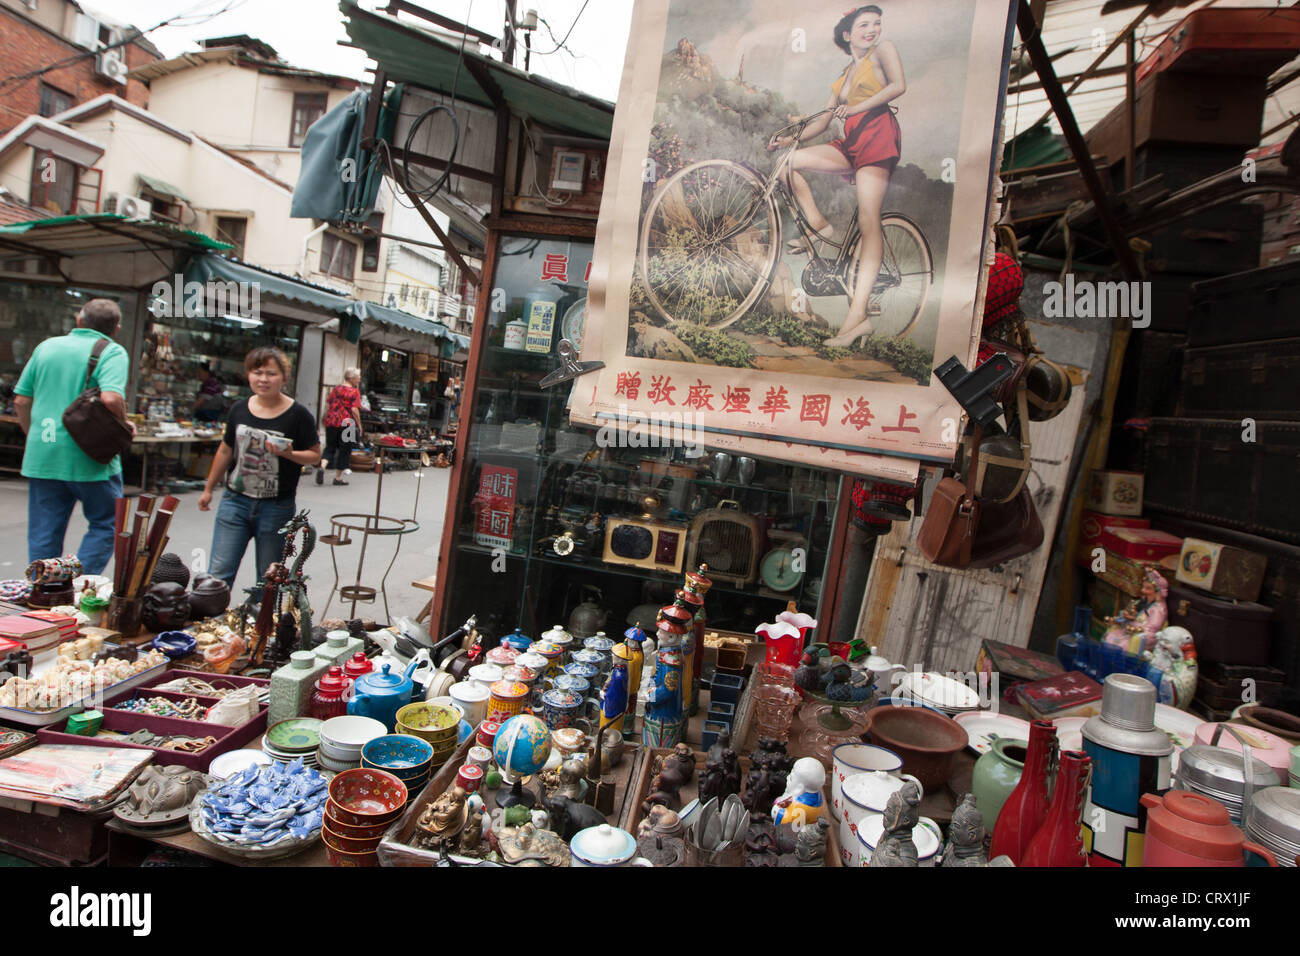 Dongtai Road Antique Market in Shanghai, China - Stock Image